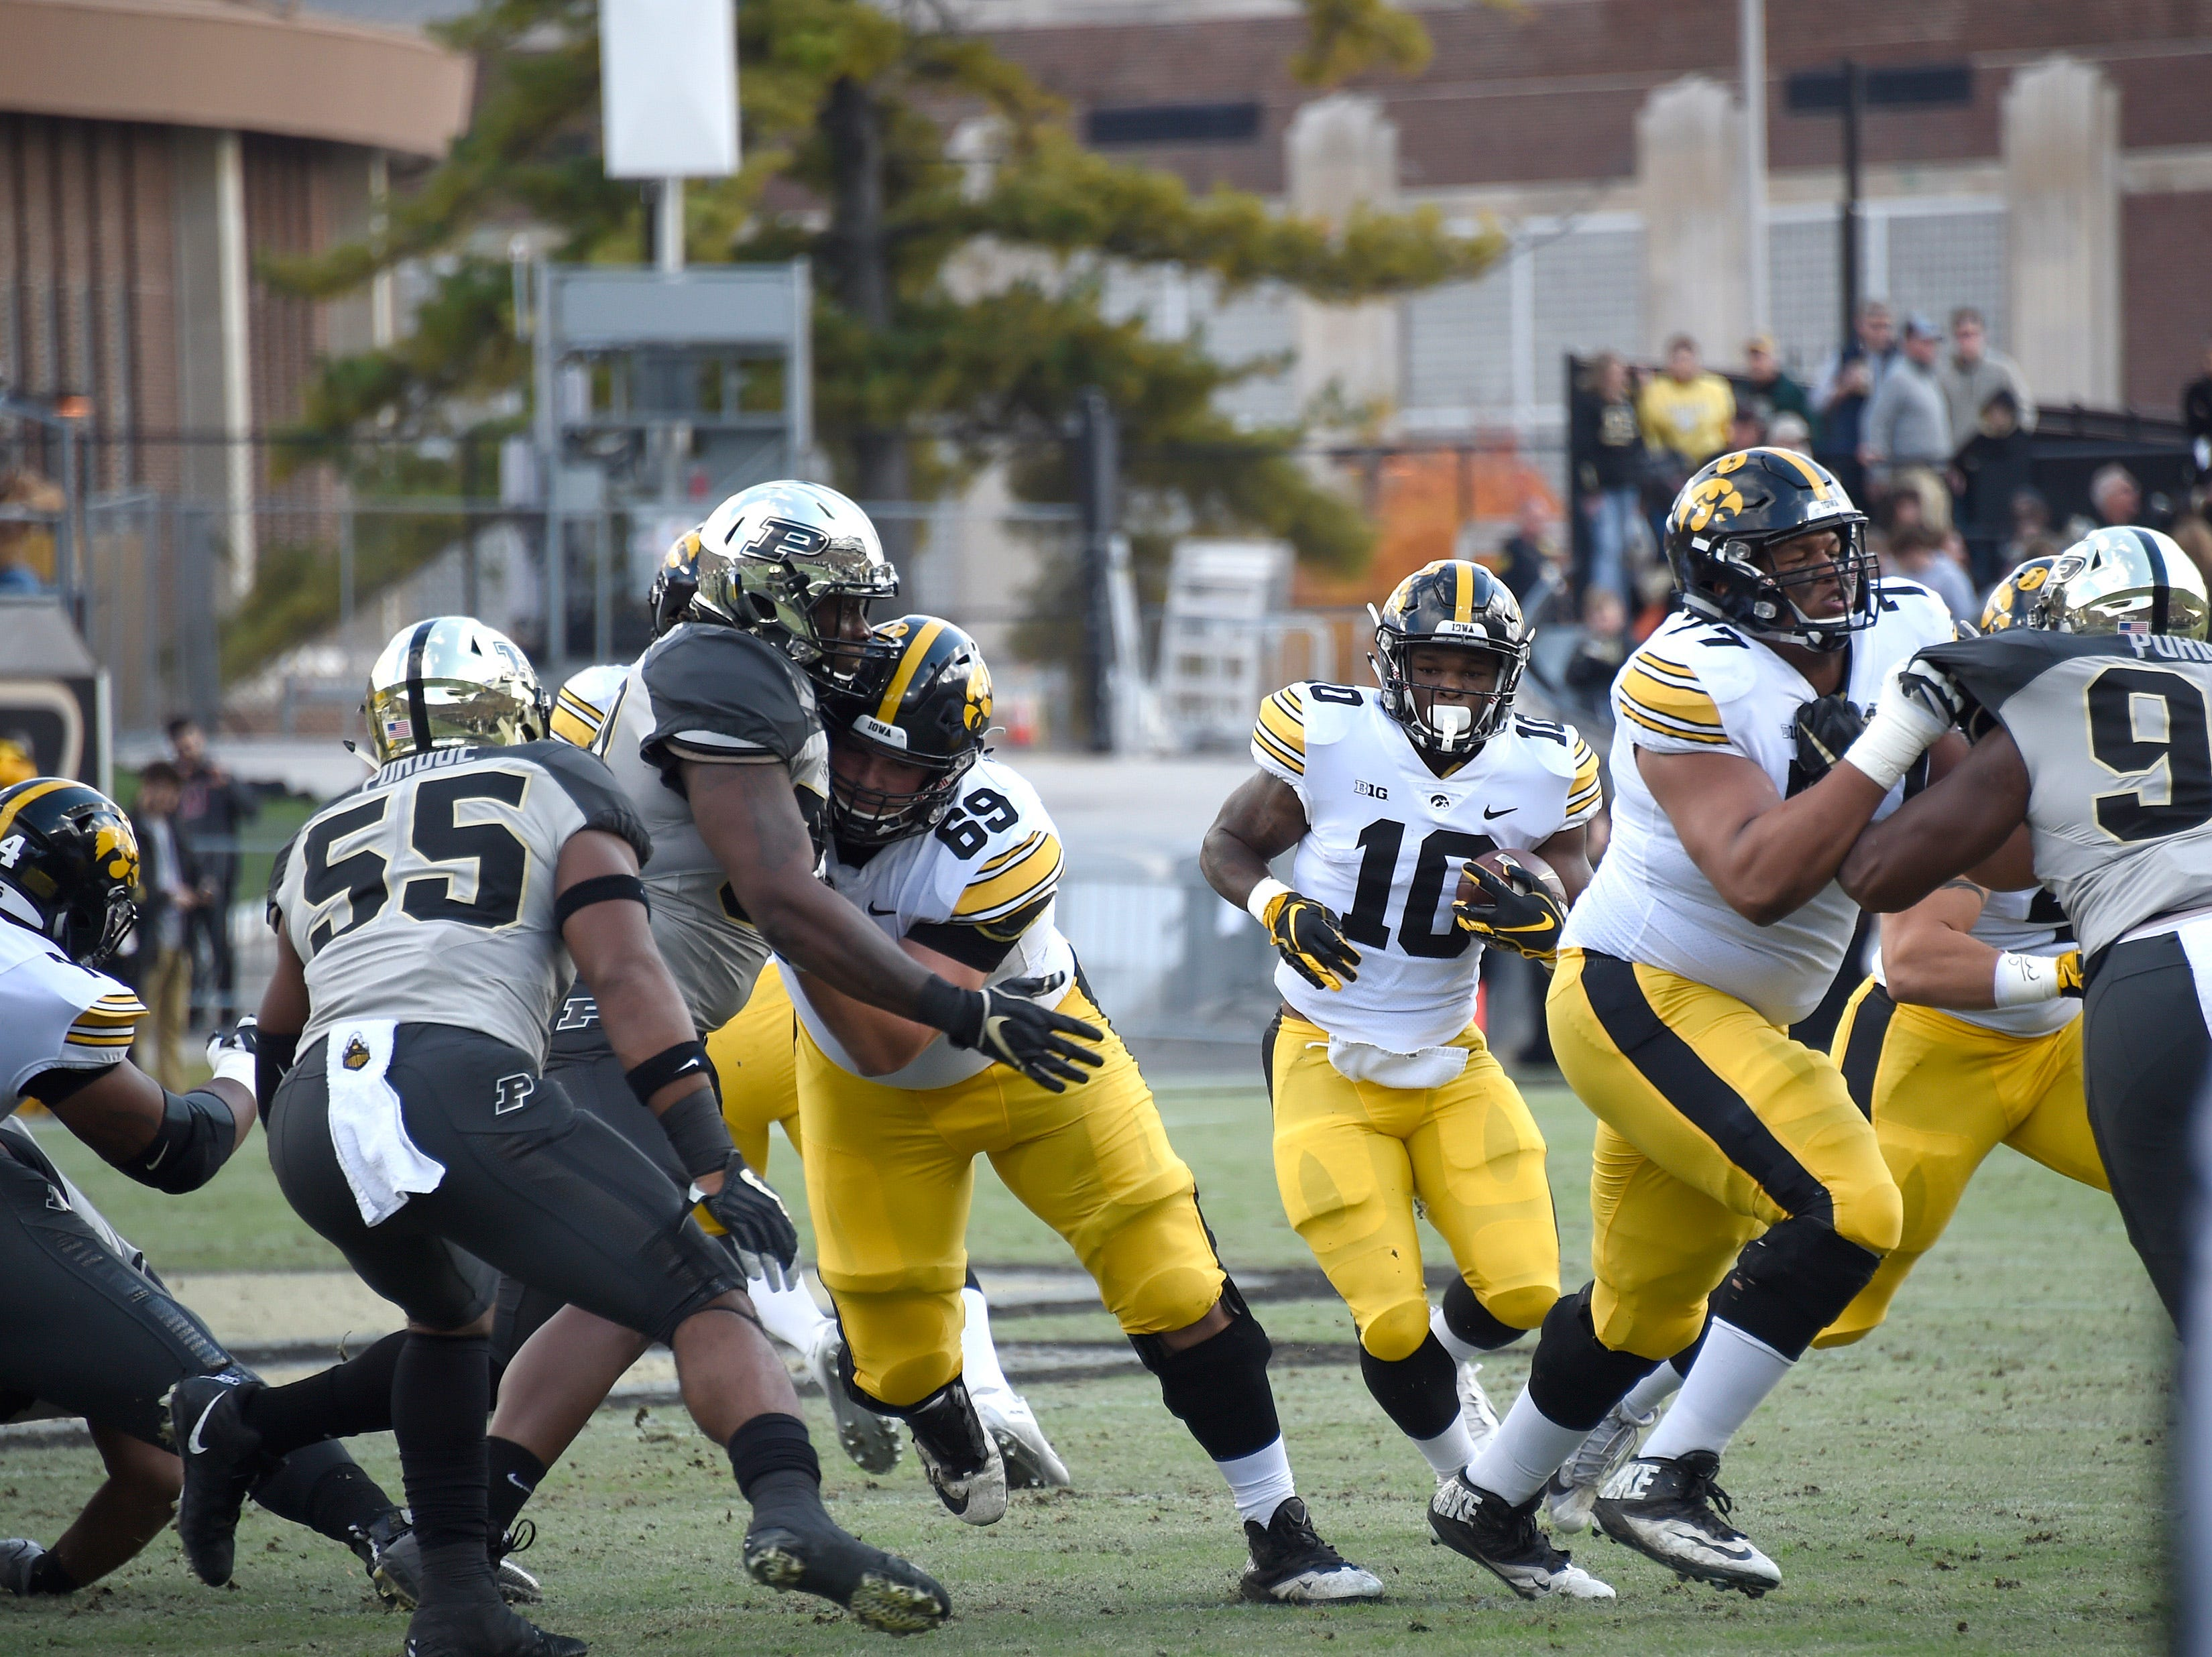 Nov 3, 2018; West Lafayette, IN, USA;  Iowa Hawkeyes running back Mekhi Sargent (10) looks for room to run behind his blockers lineman Keegan Render (69) and  Alaric Jackson (77) against the Purdue Boilermakers at Ross-Ade Stadium.